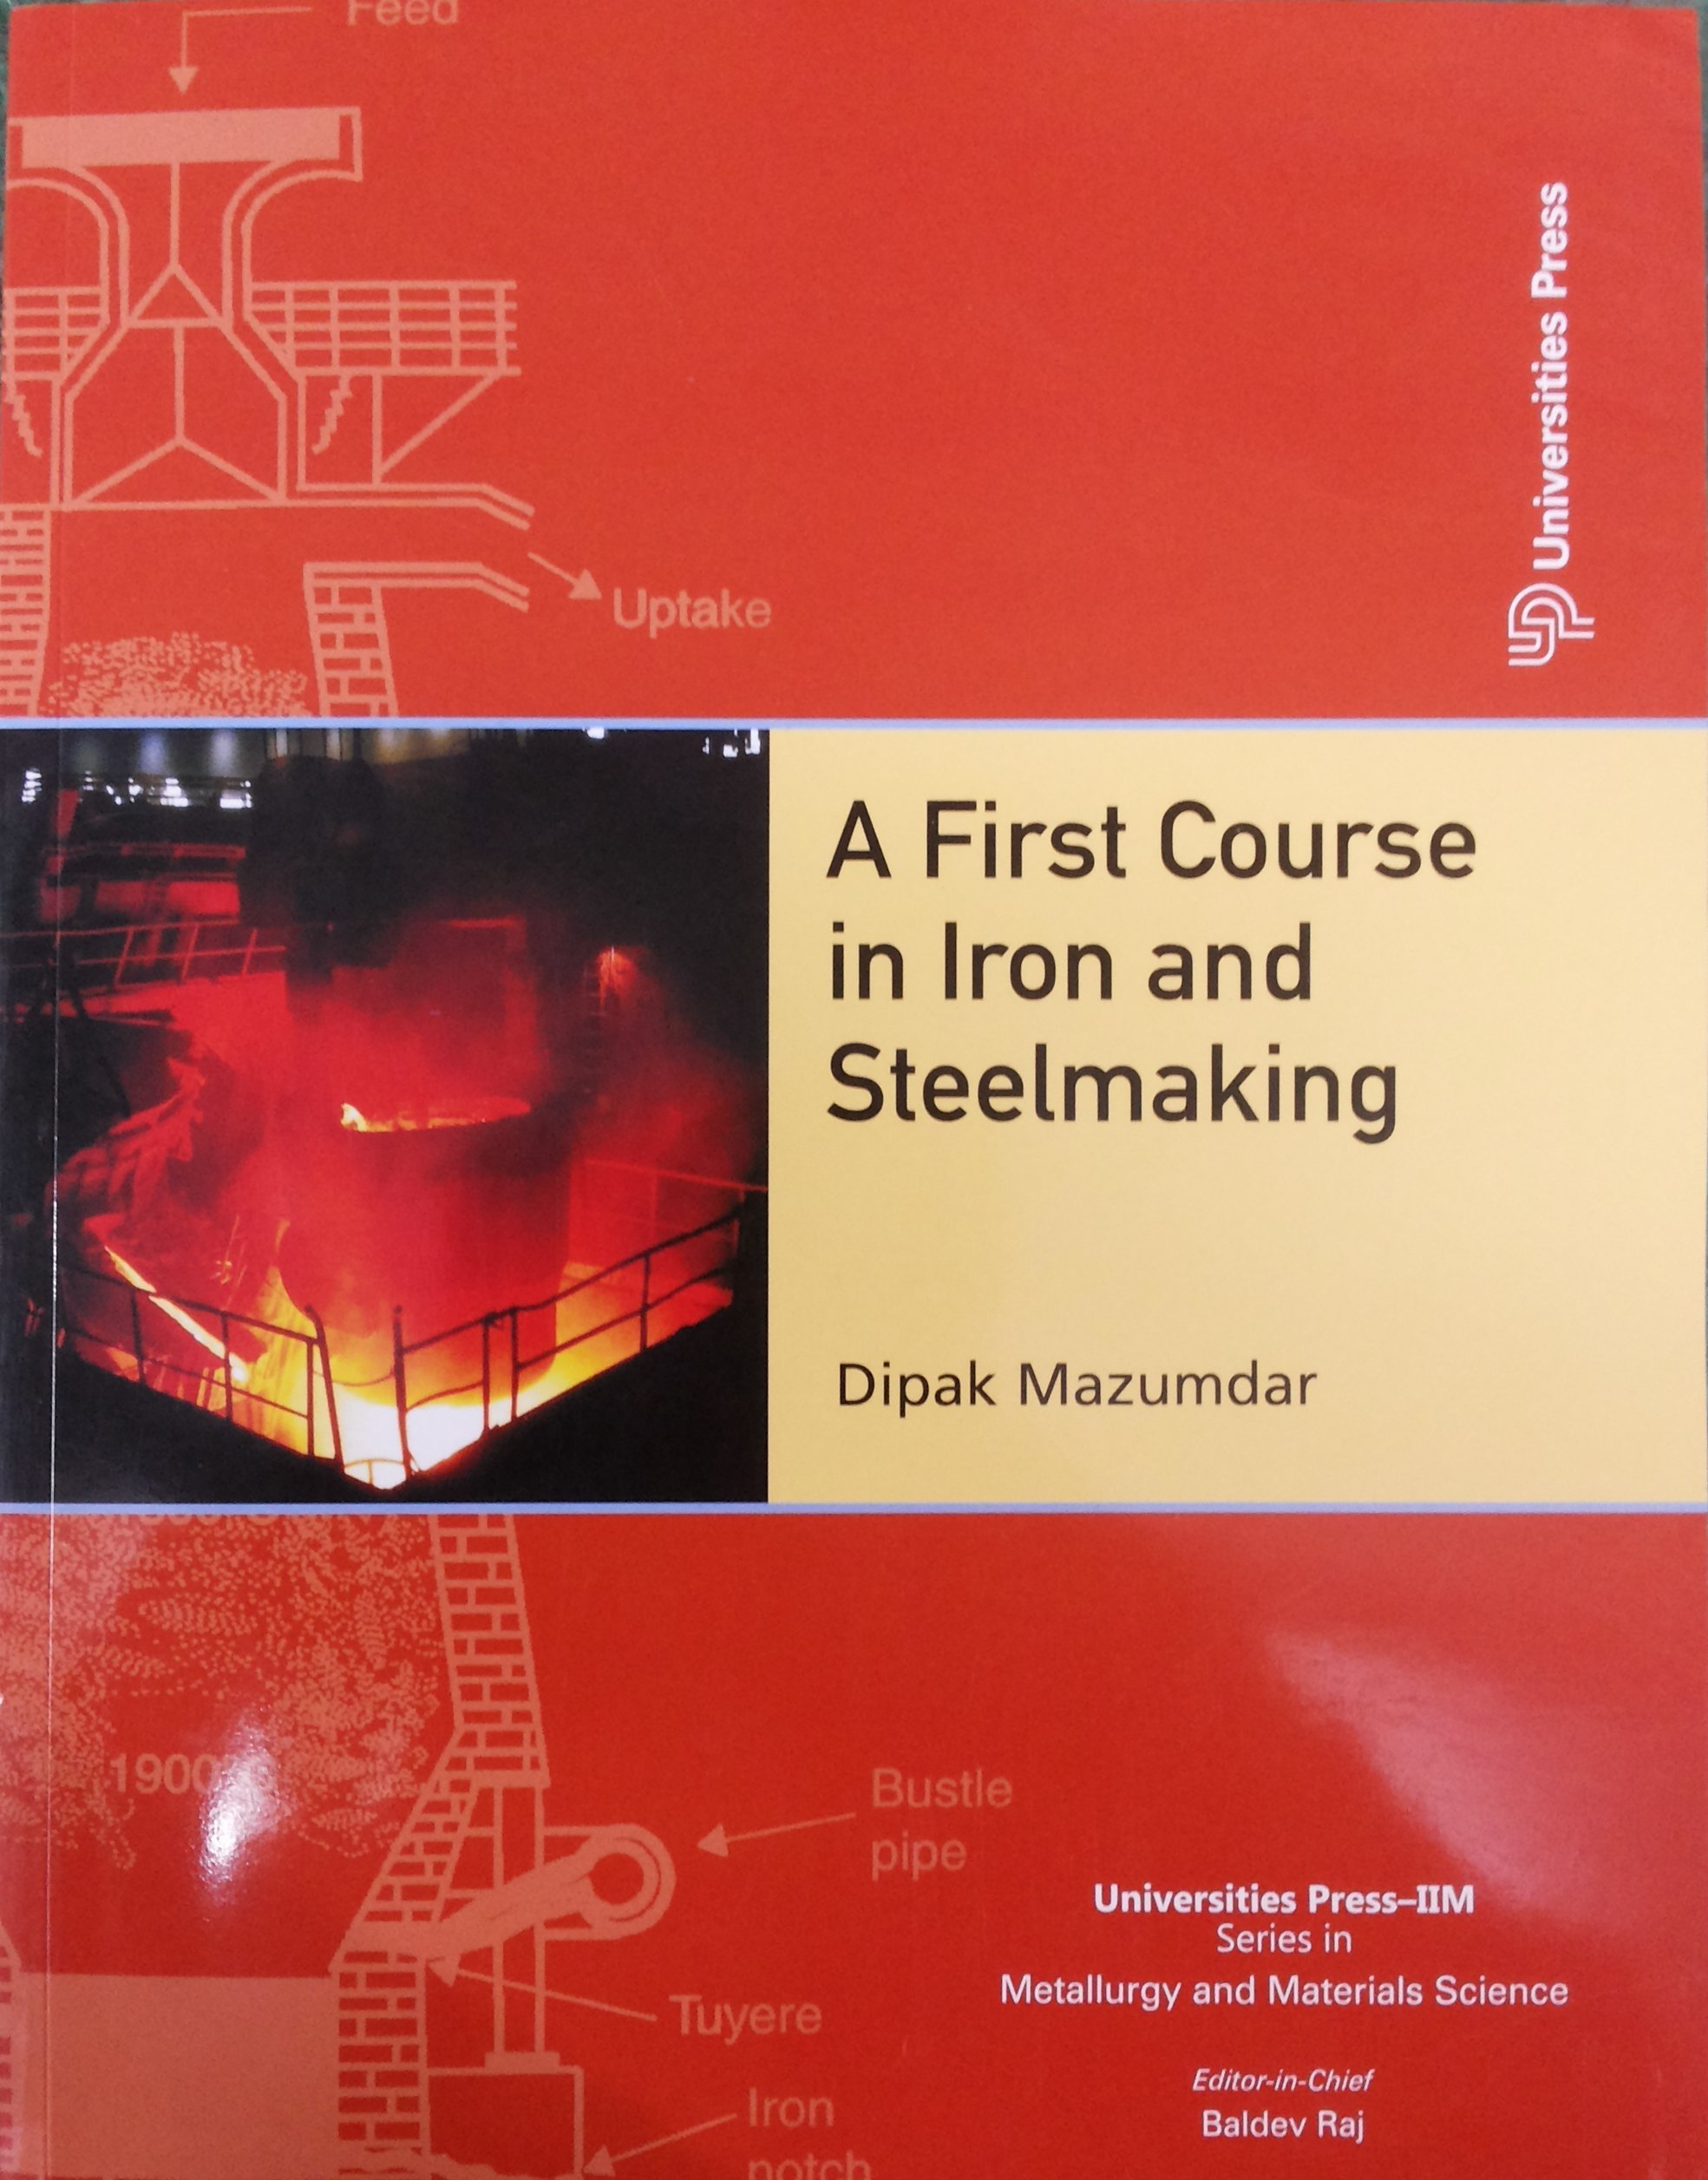 A First Course in Iron and Steelmaking: Dipak Mazumdar